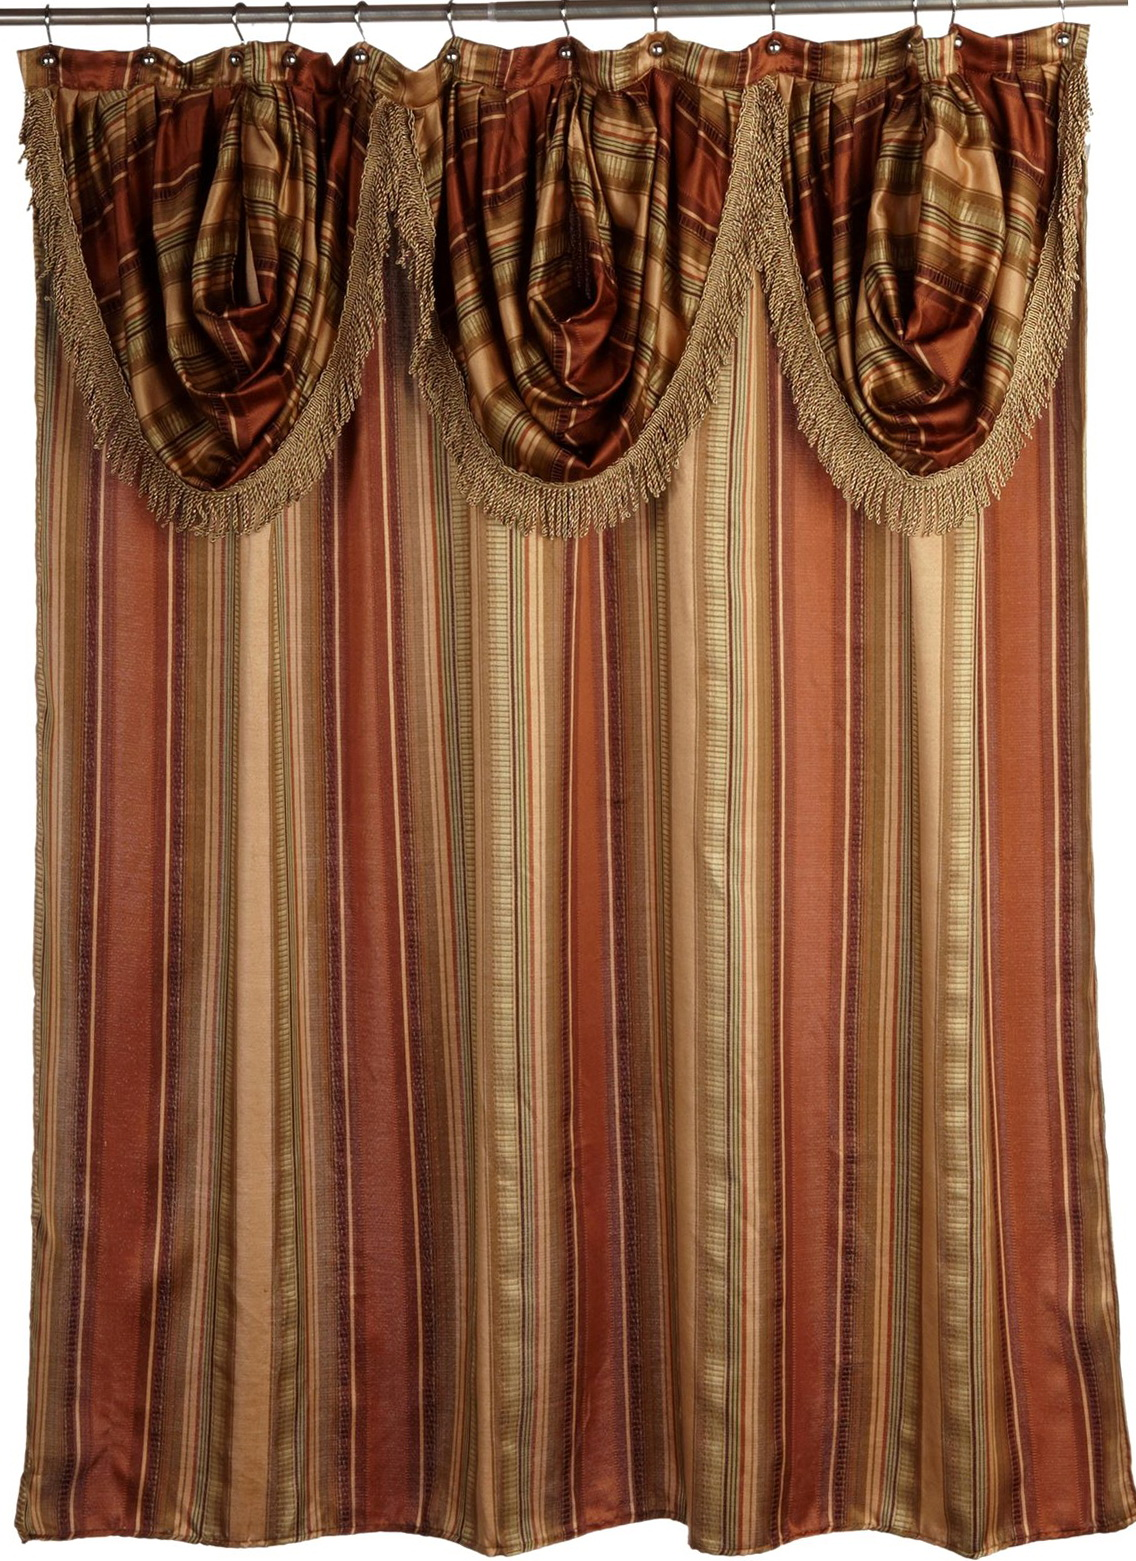 Curtains With Valances Attached Home Design Ideas